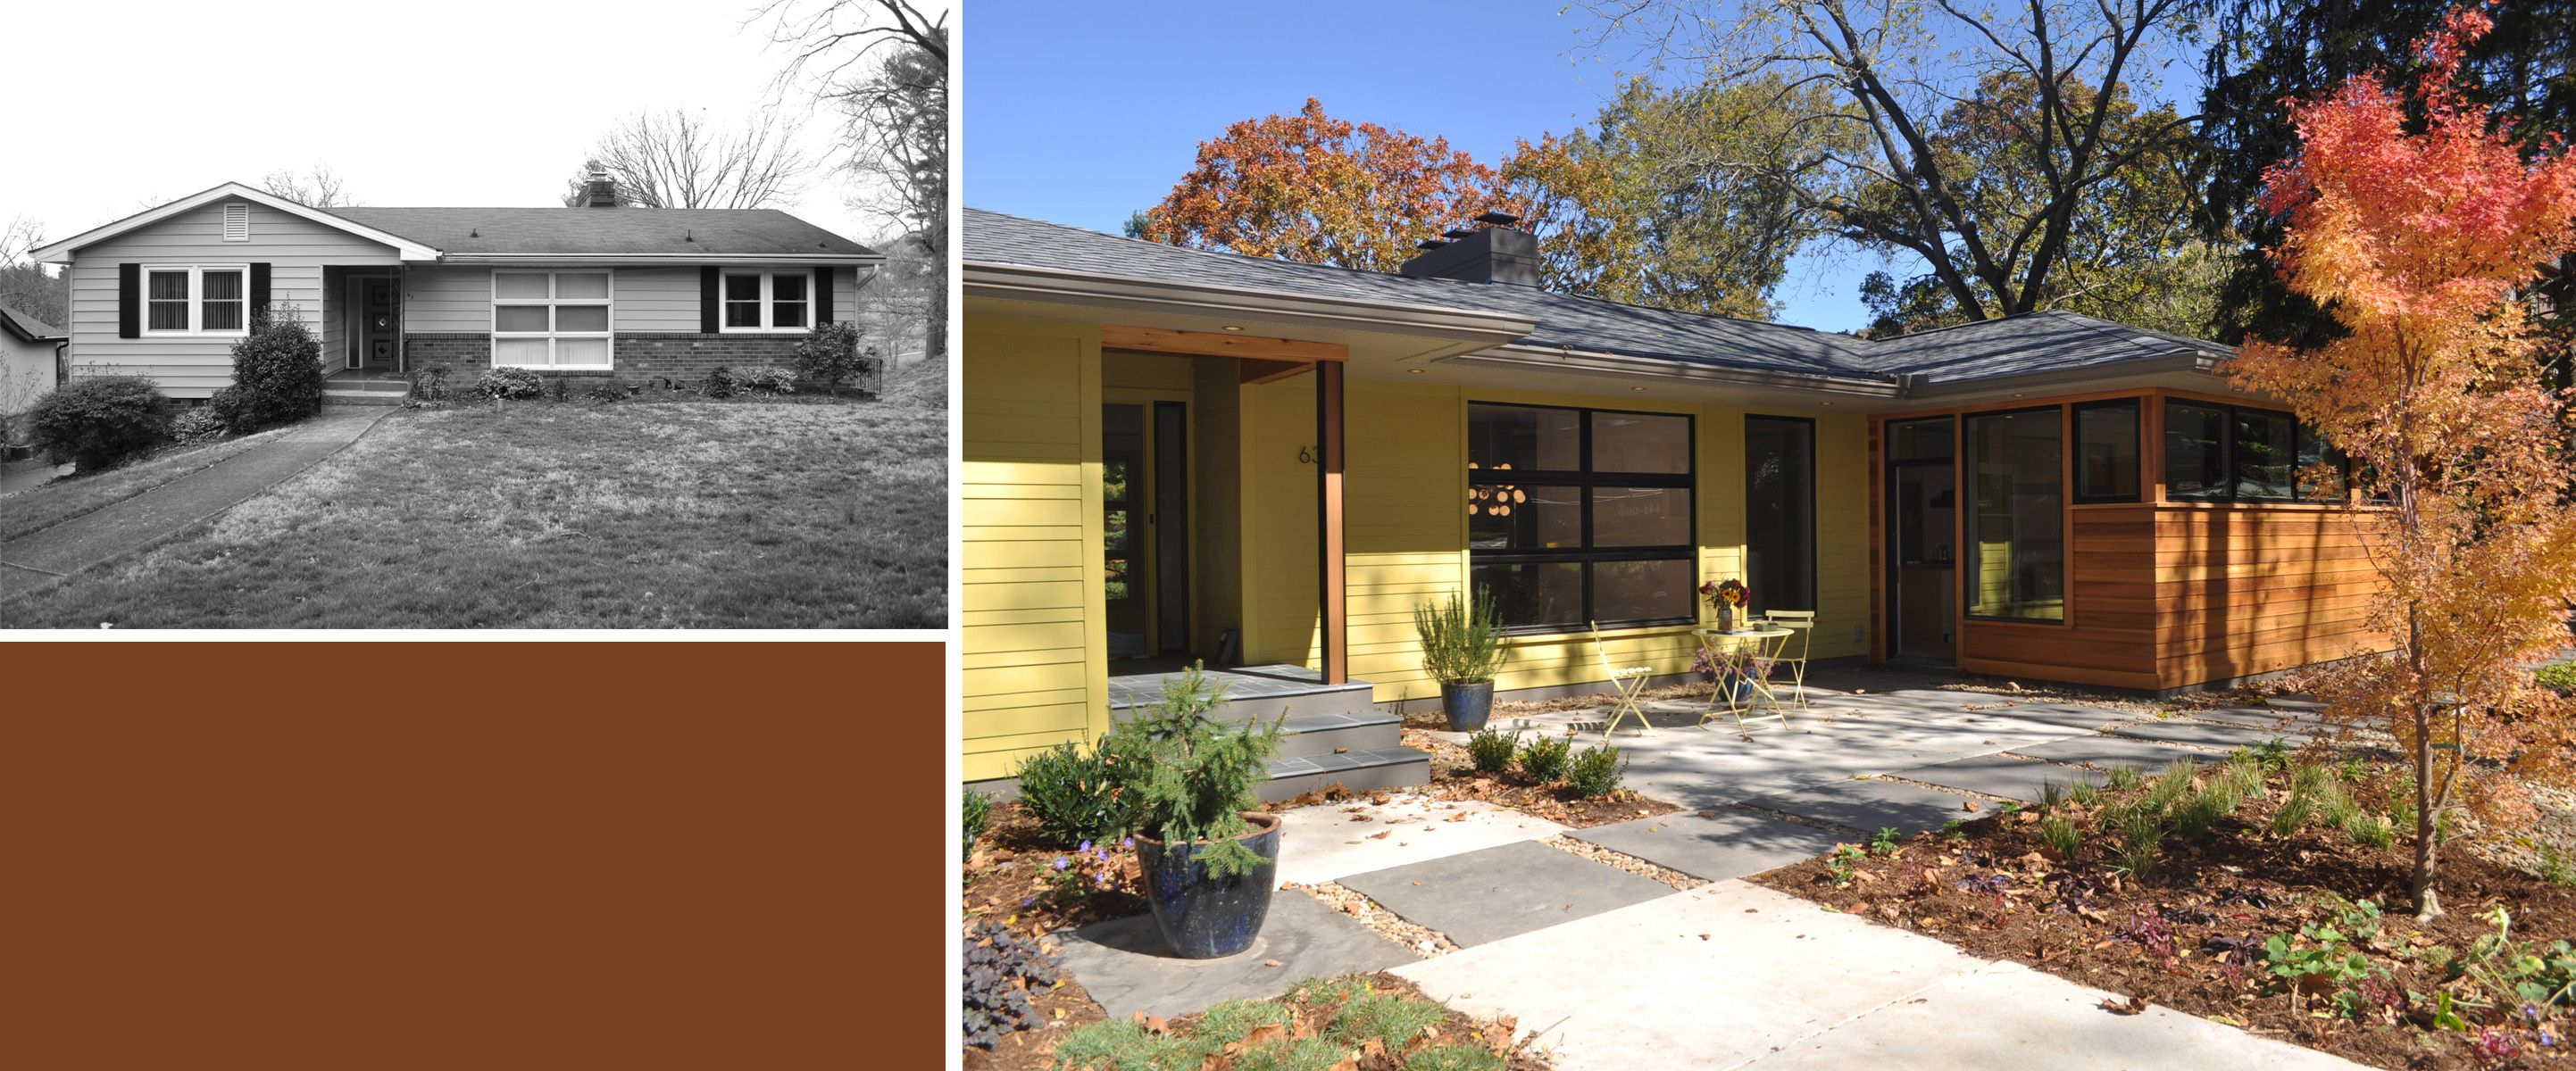 Elevation Before And After New Modern Ranch Modern House